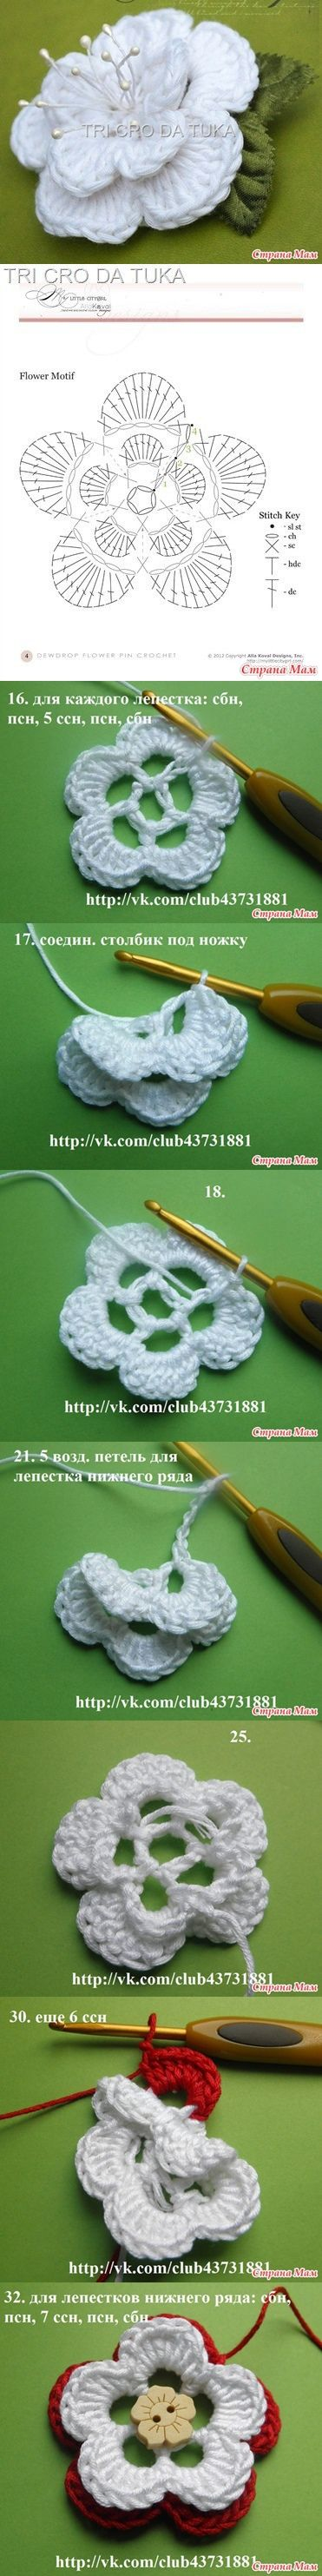 Pin By Ivana Hess On Crochet Pinterest Flowers Rose Flower Diagram 7 How To Make Hand Pipicstats